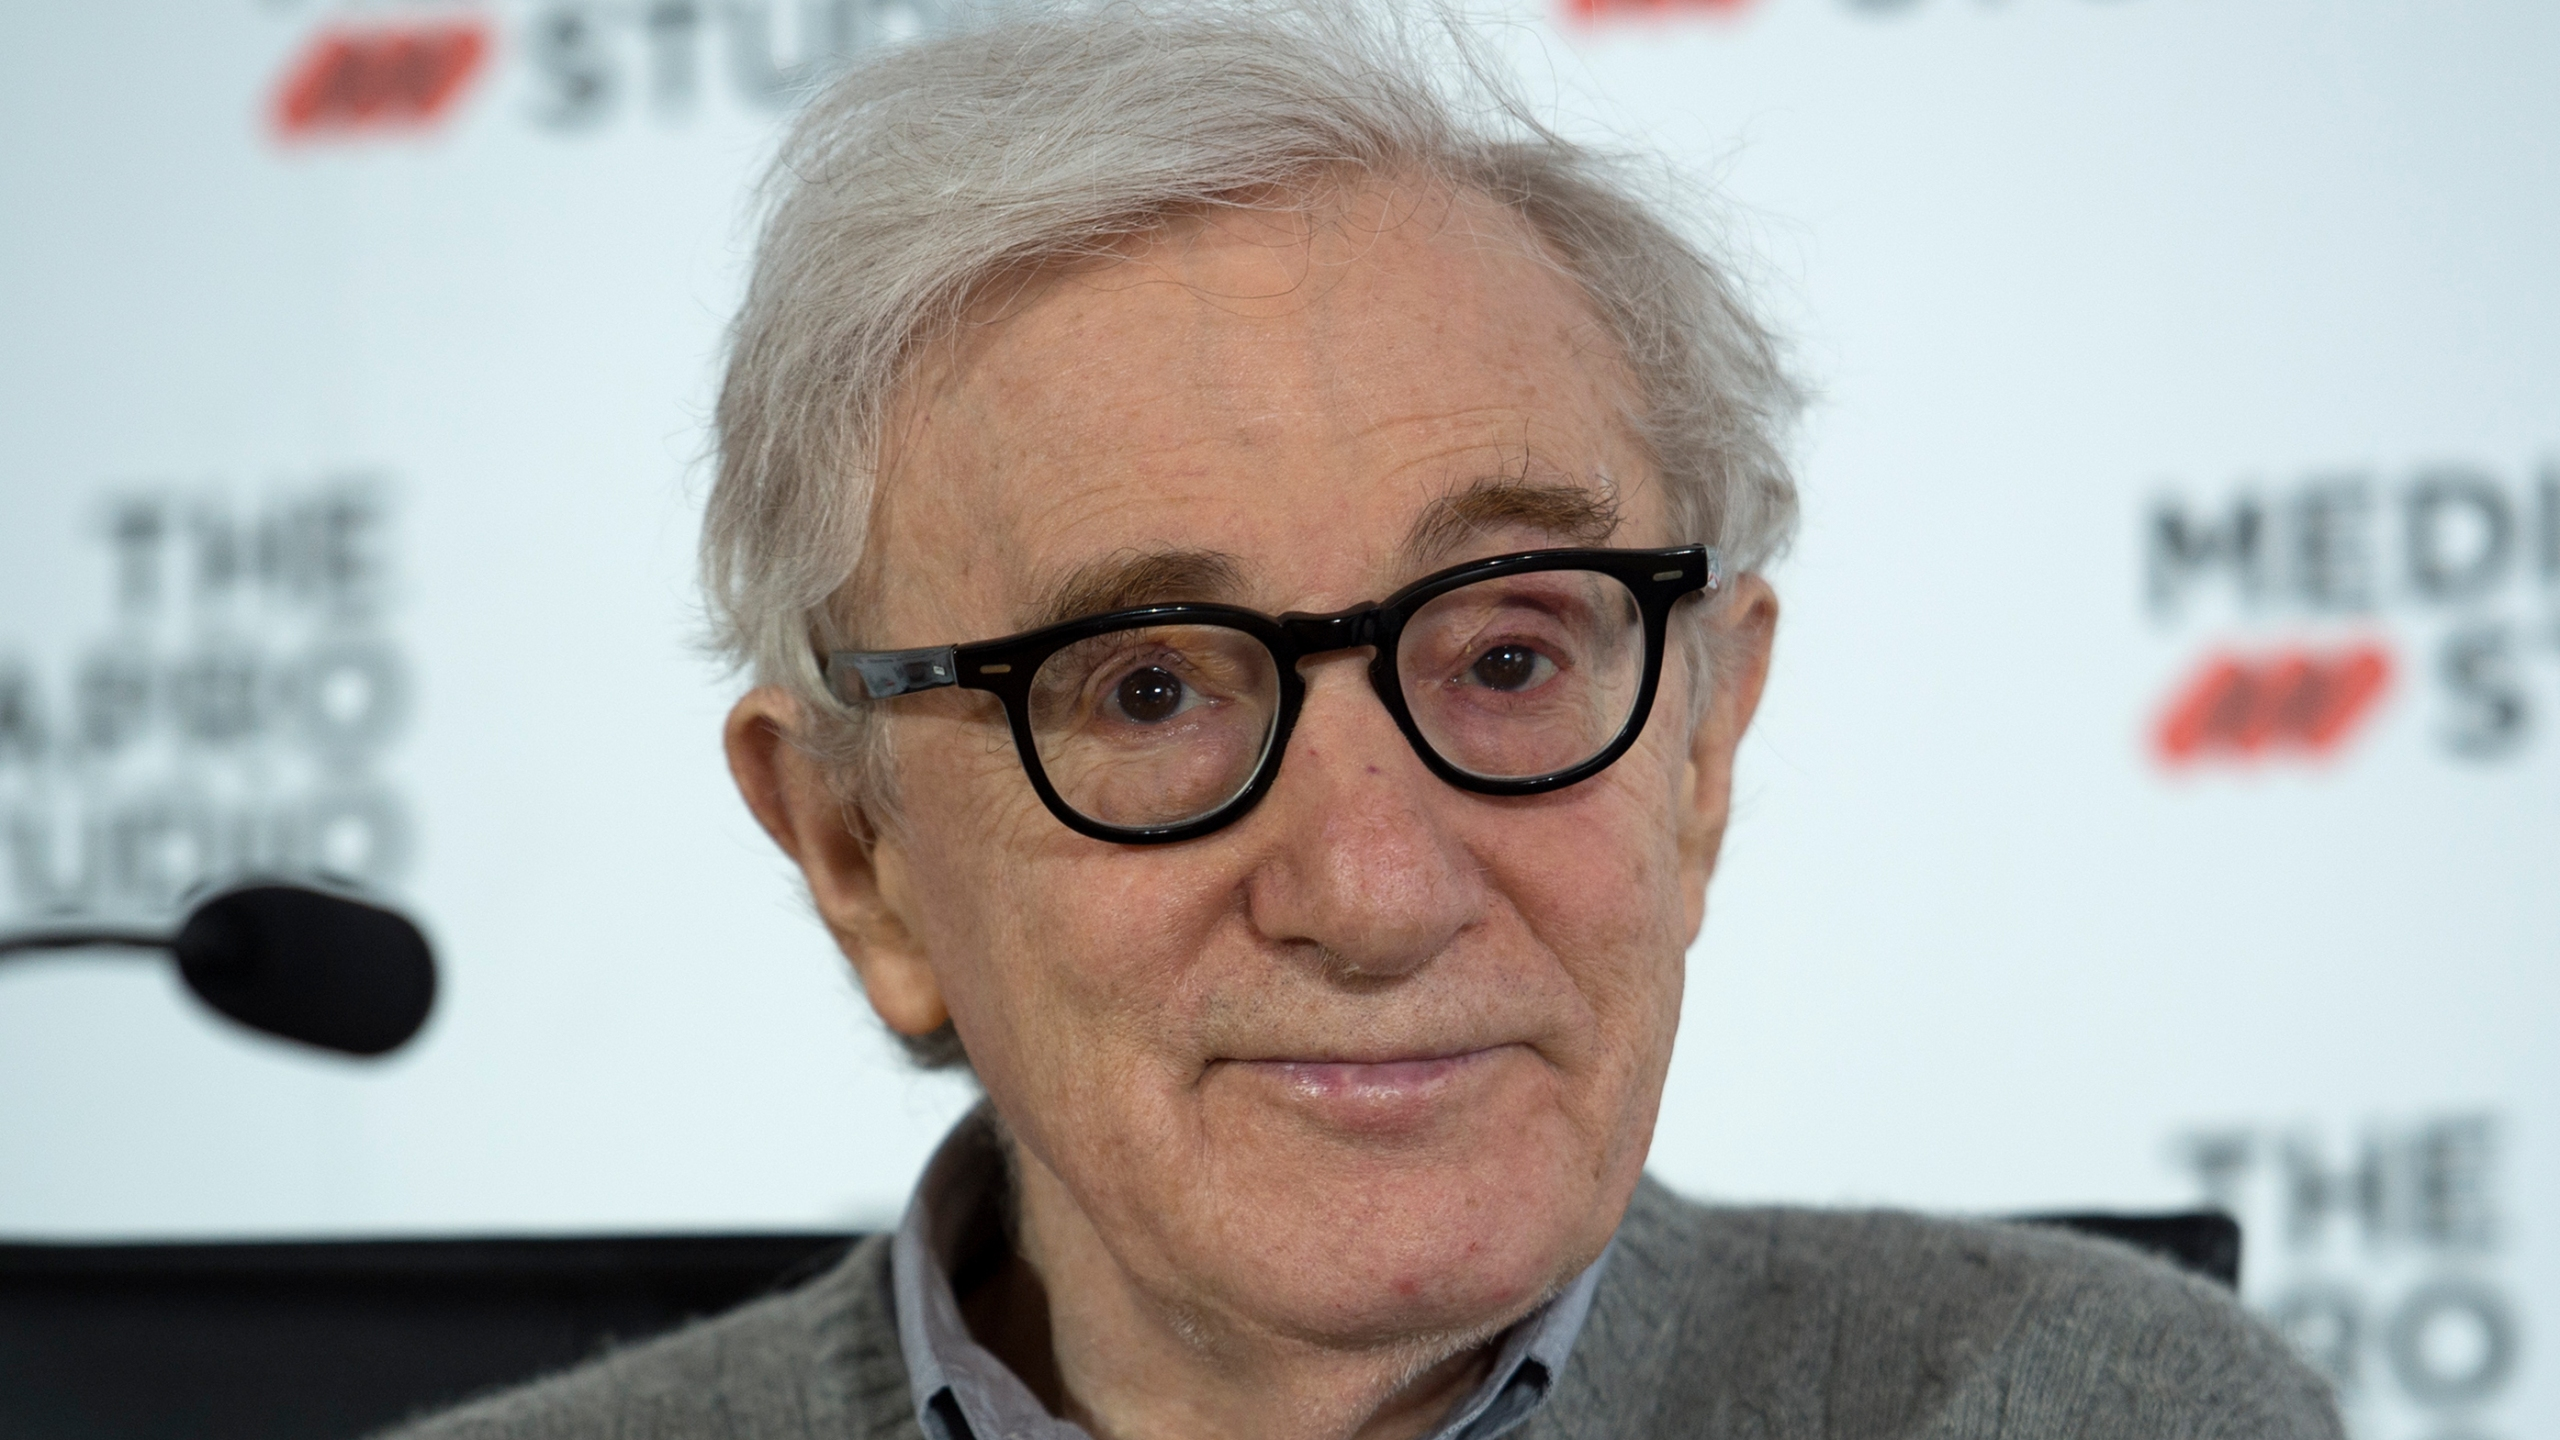 U.S. director Woody Allen holds a press conference in the northern Spanish Basque city of San Sebastian, where he will start shooting his yet-untitled next film, on July 9, 2019. (ANDER GILLENEA / AFP via Getty Images)